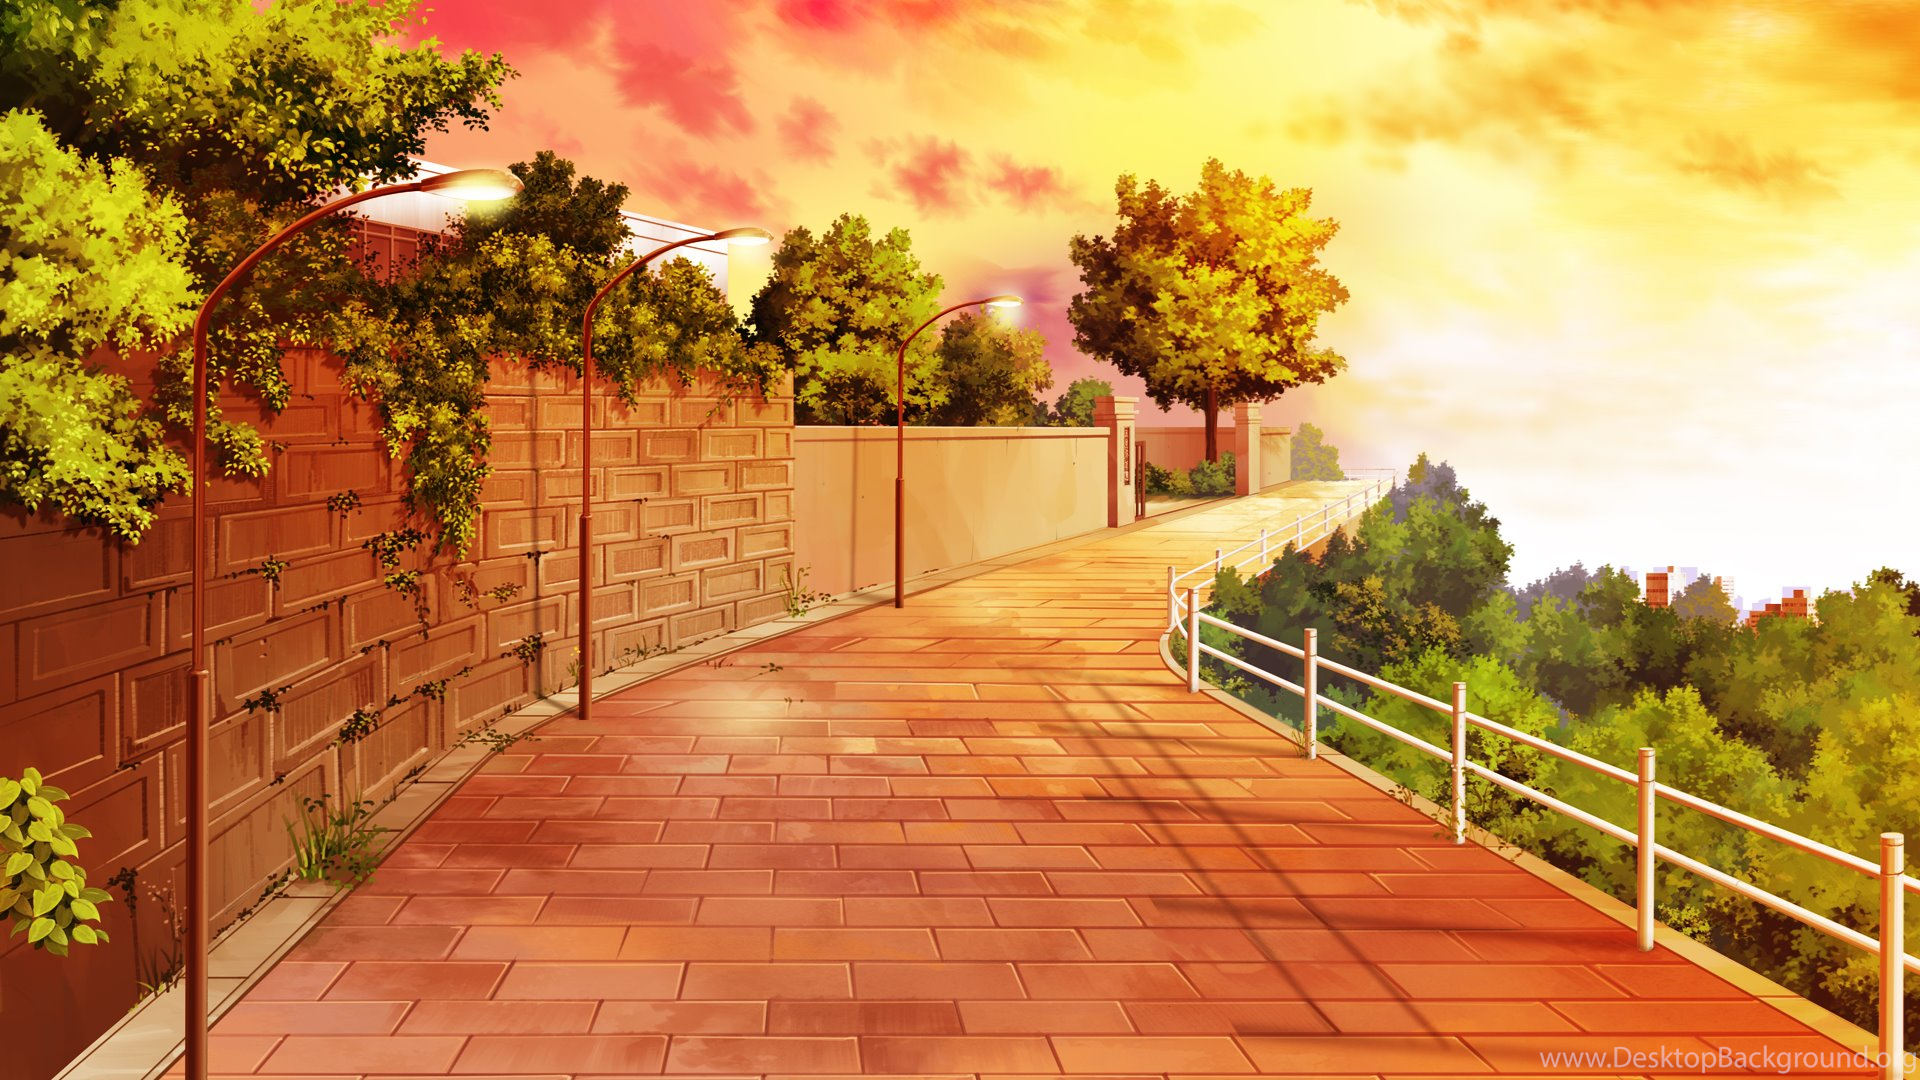 Anime Scenery Wallpapers Hd 6390 1920x1080 Umad Com Desktop Background